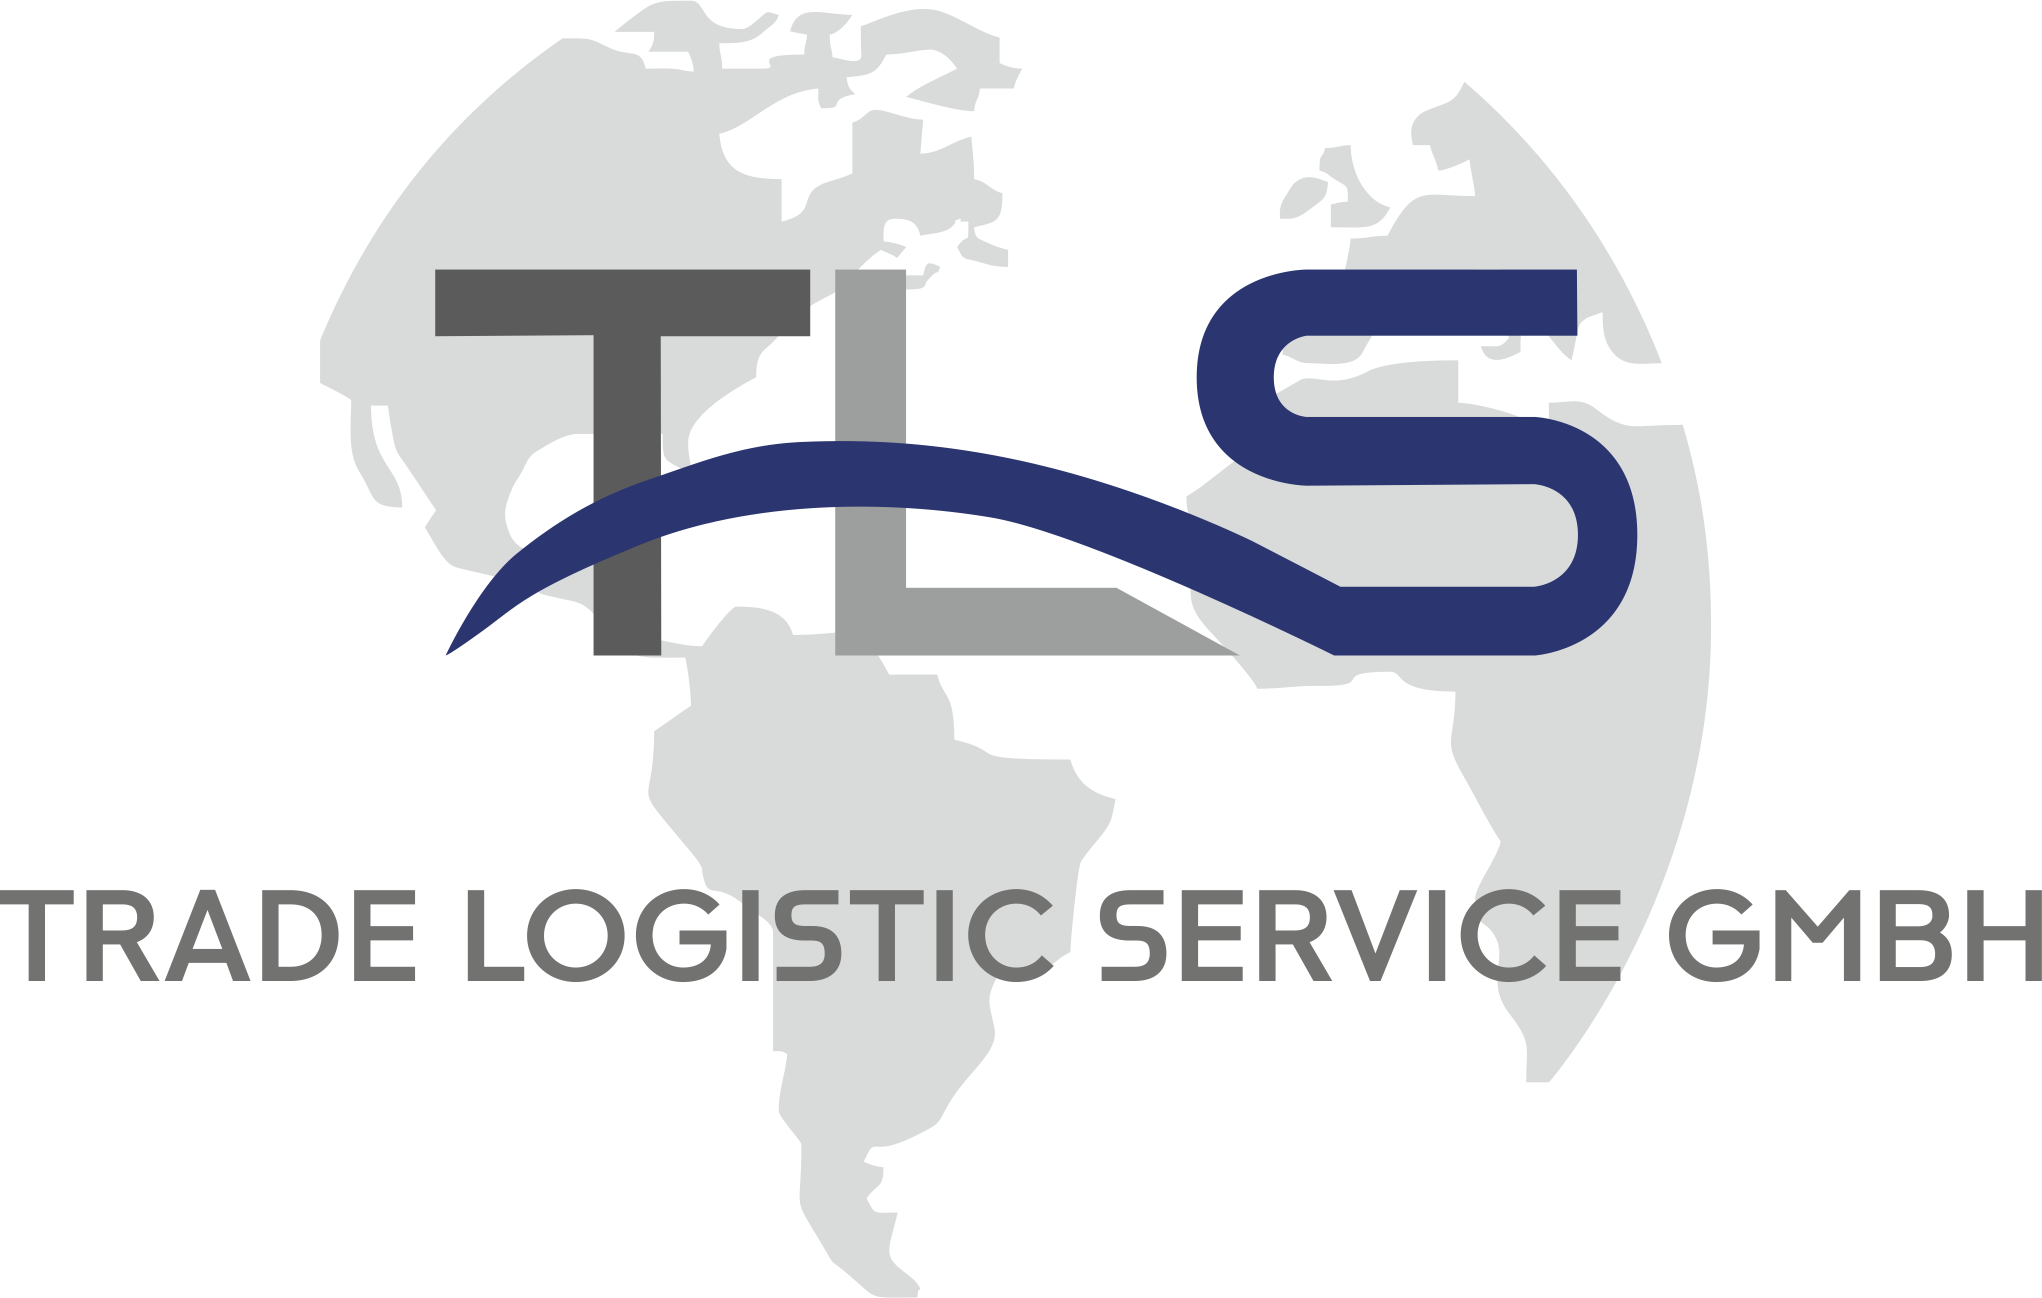 TLS Trade Logistic Service GmbH